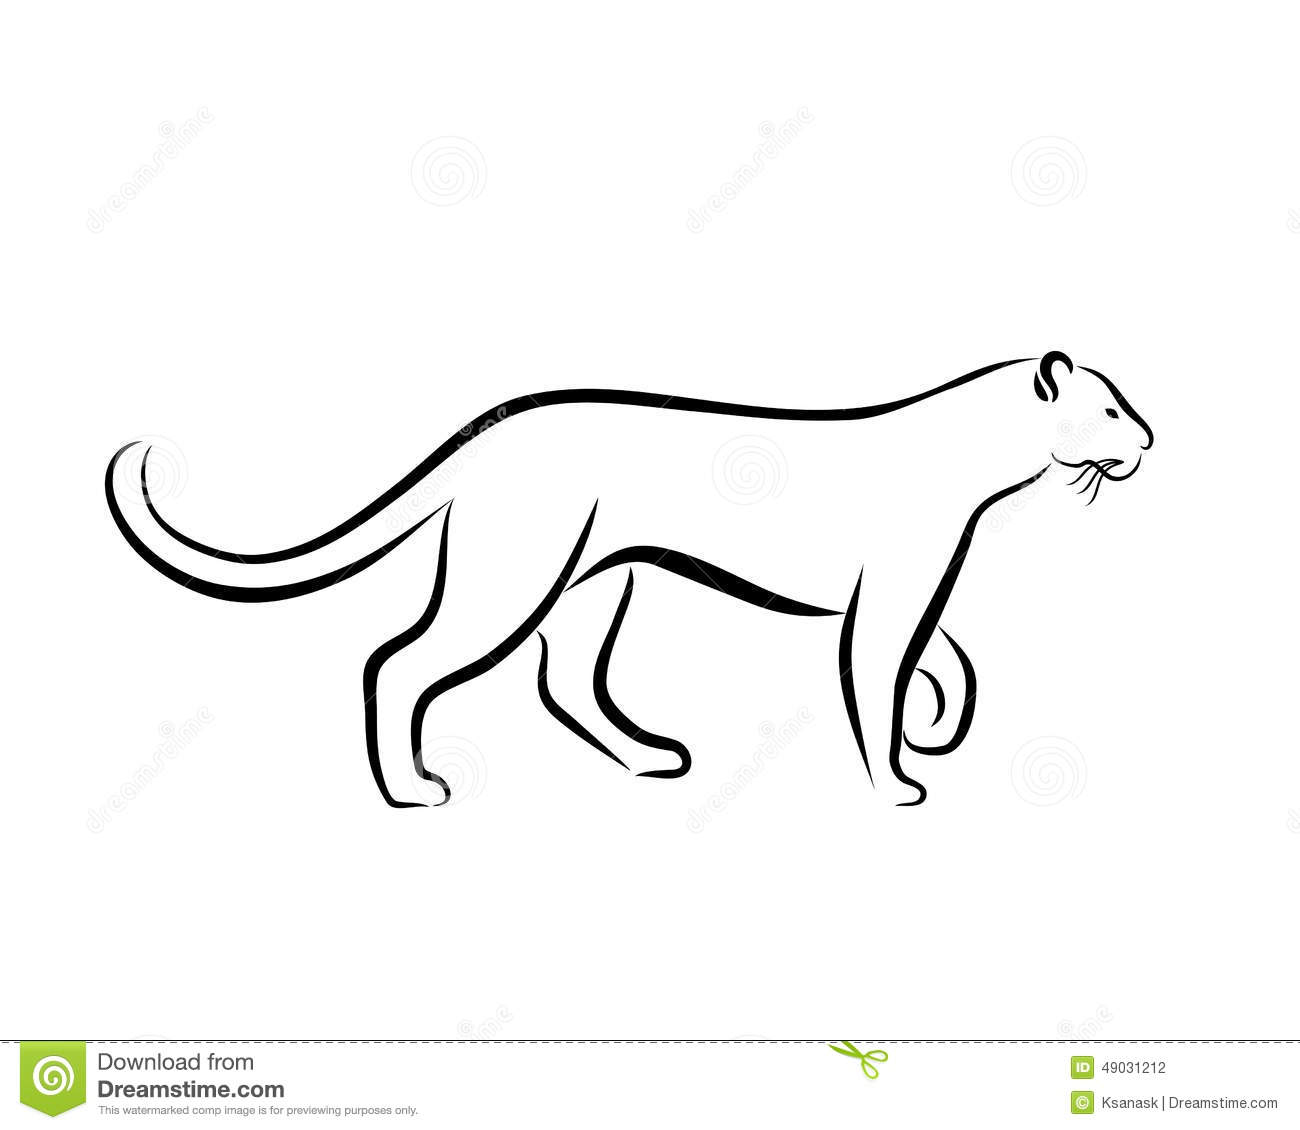 Black and white illustration with panther hand drawn sketch ink painting design element useful for logo vector file is eps8